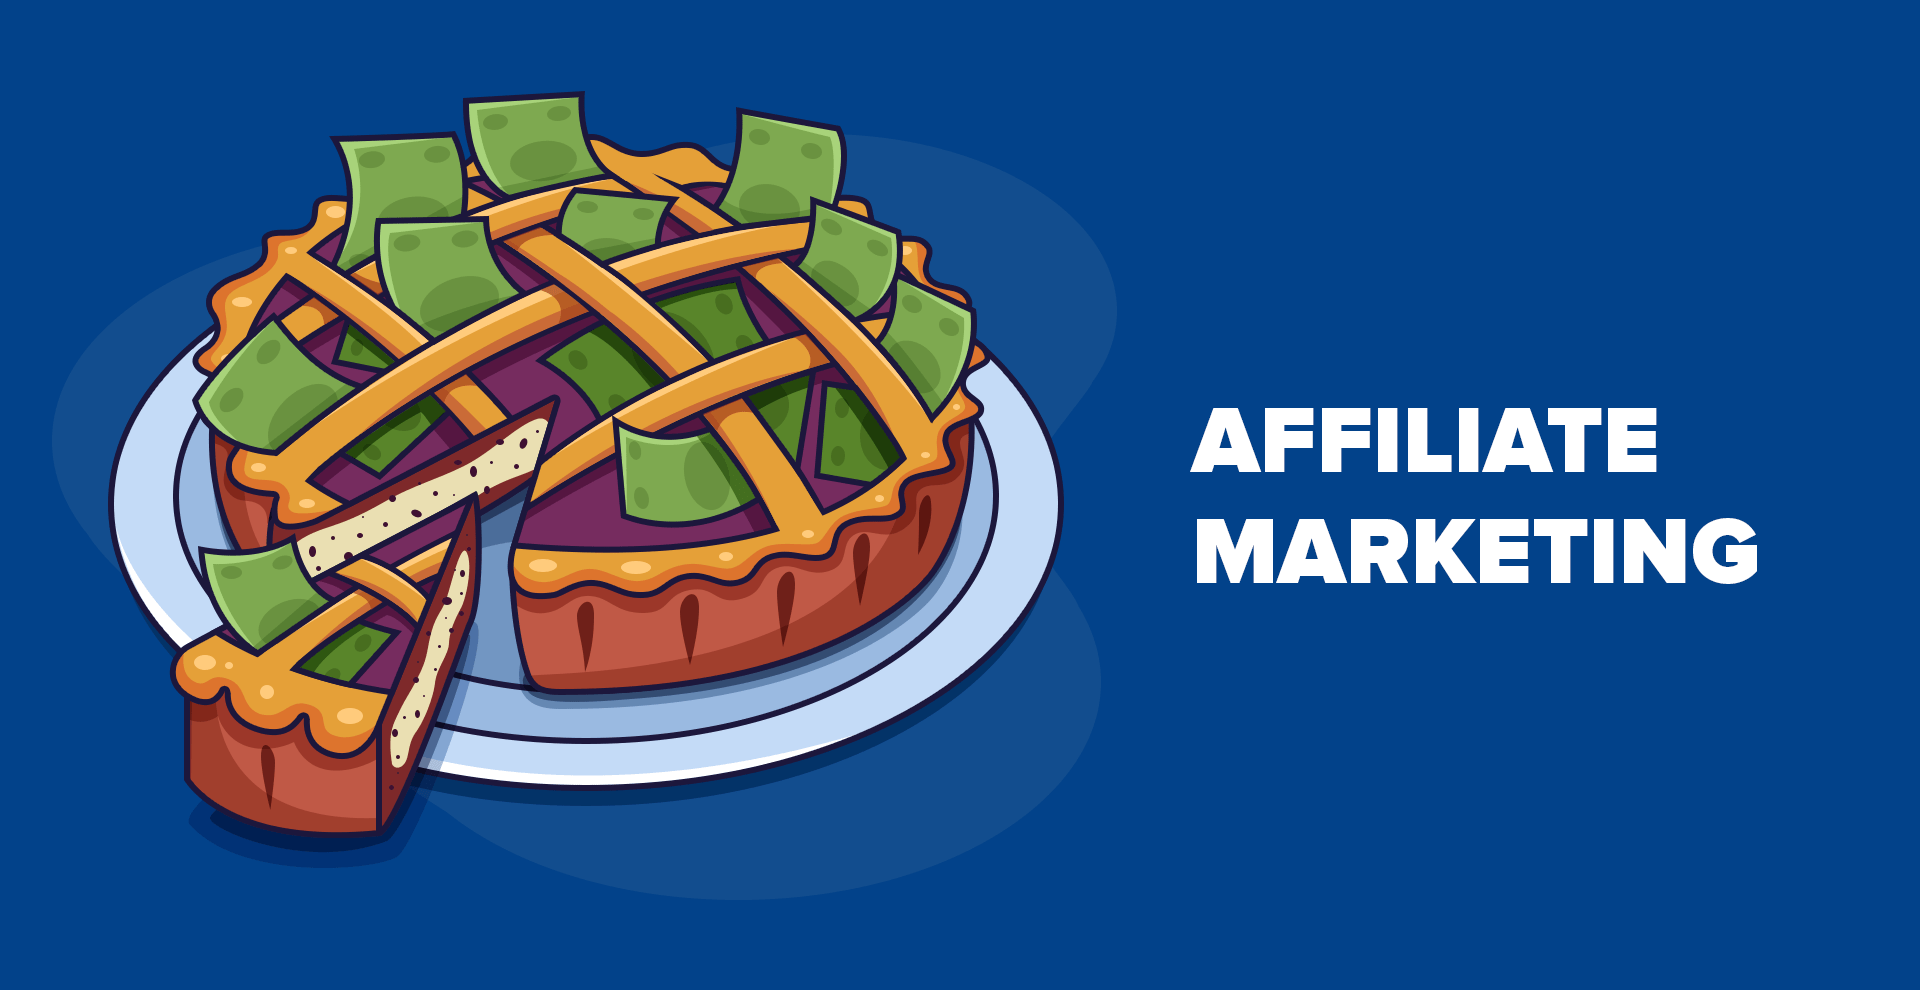 VARIOUS TYPES OF AFFILIATE MARKETING 2020